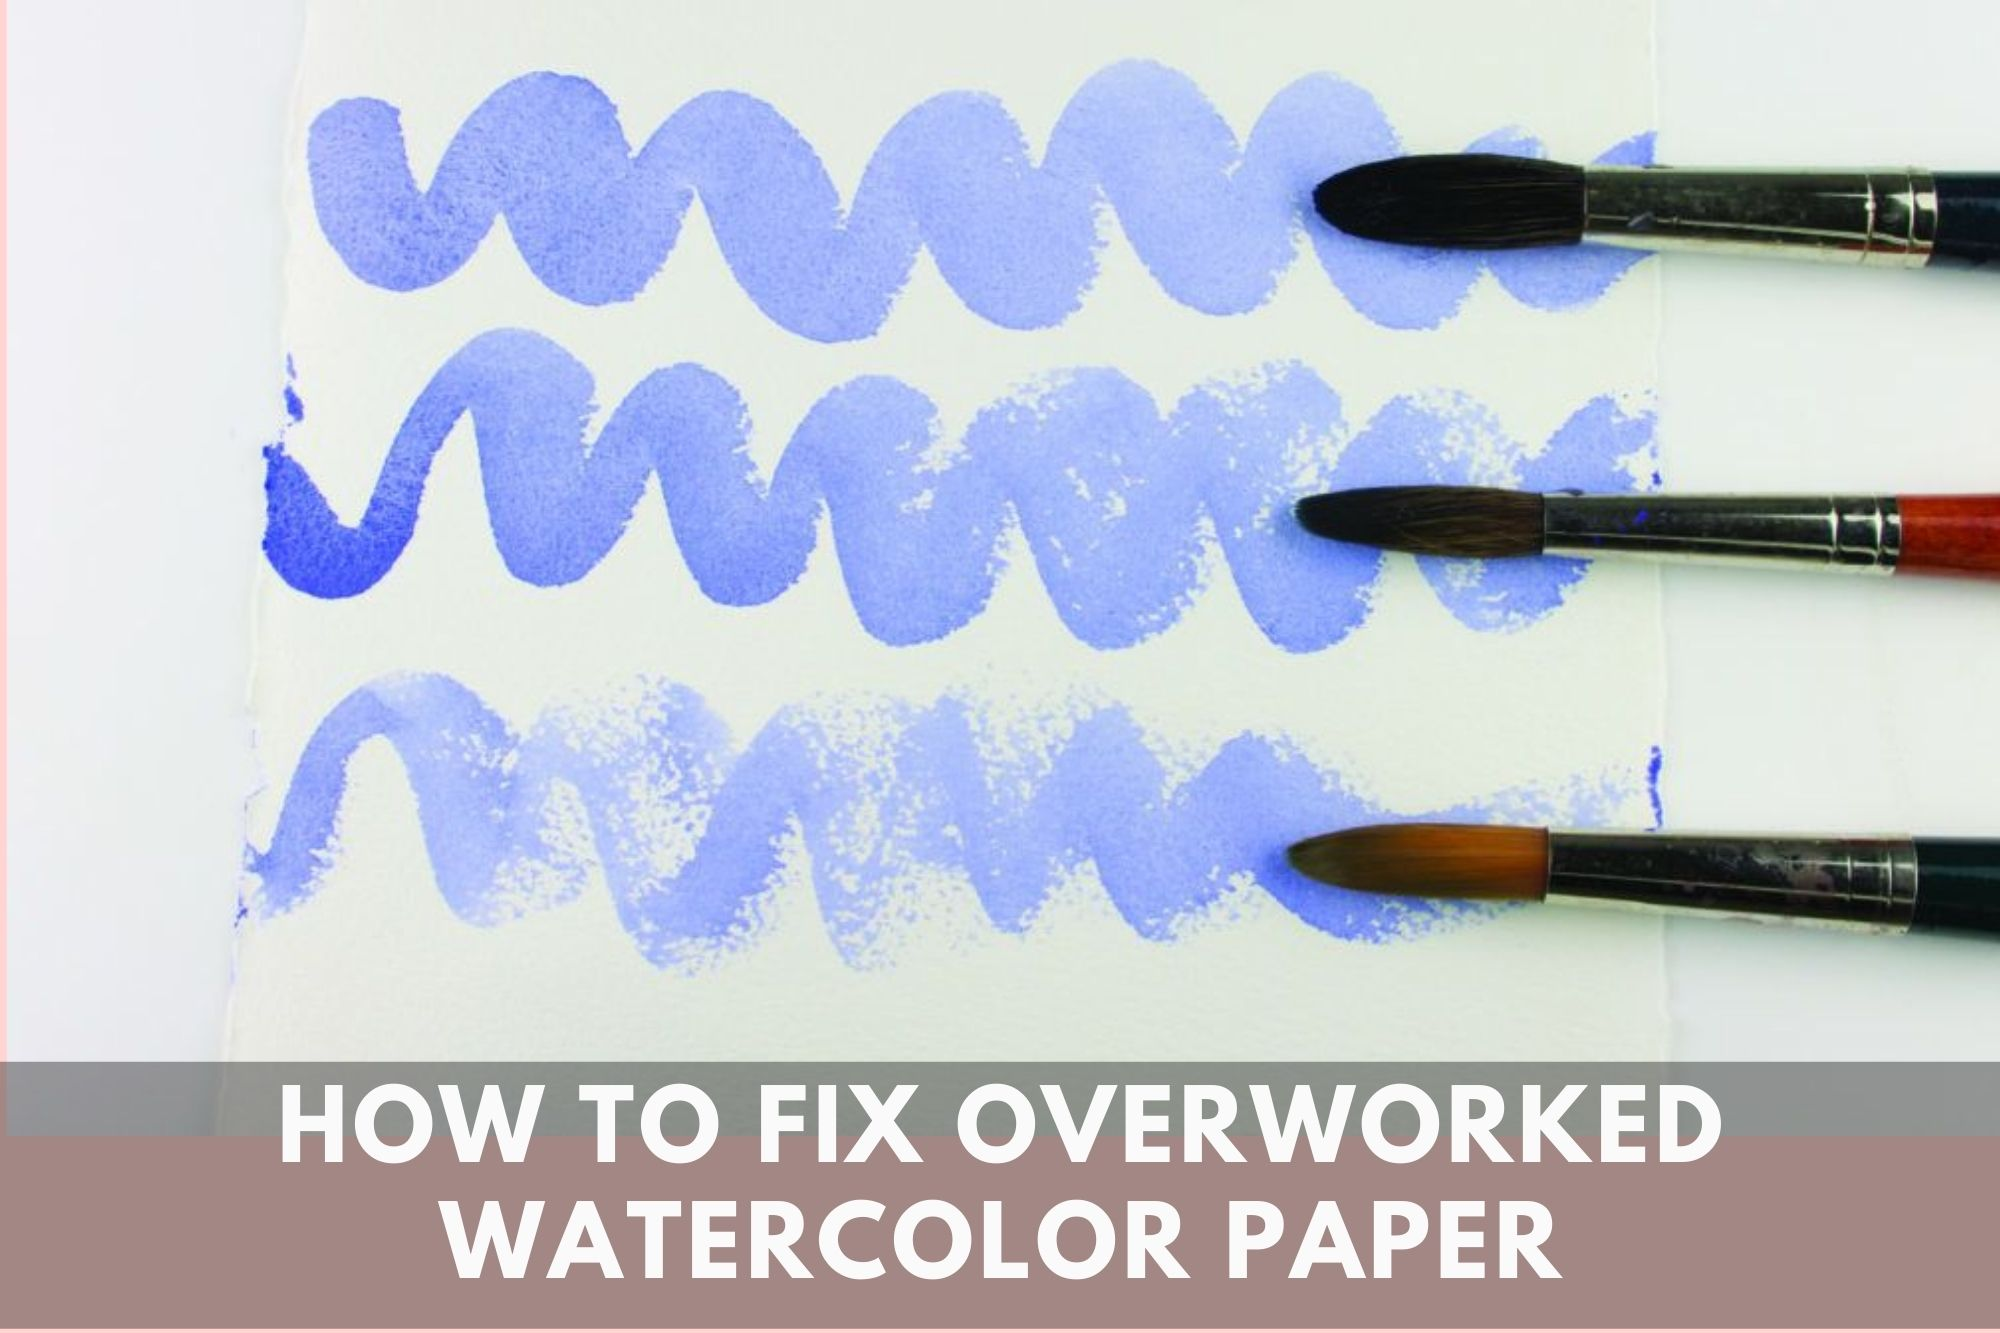 How to Fix Overworked Watercolor Paper